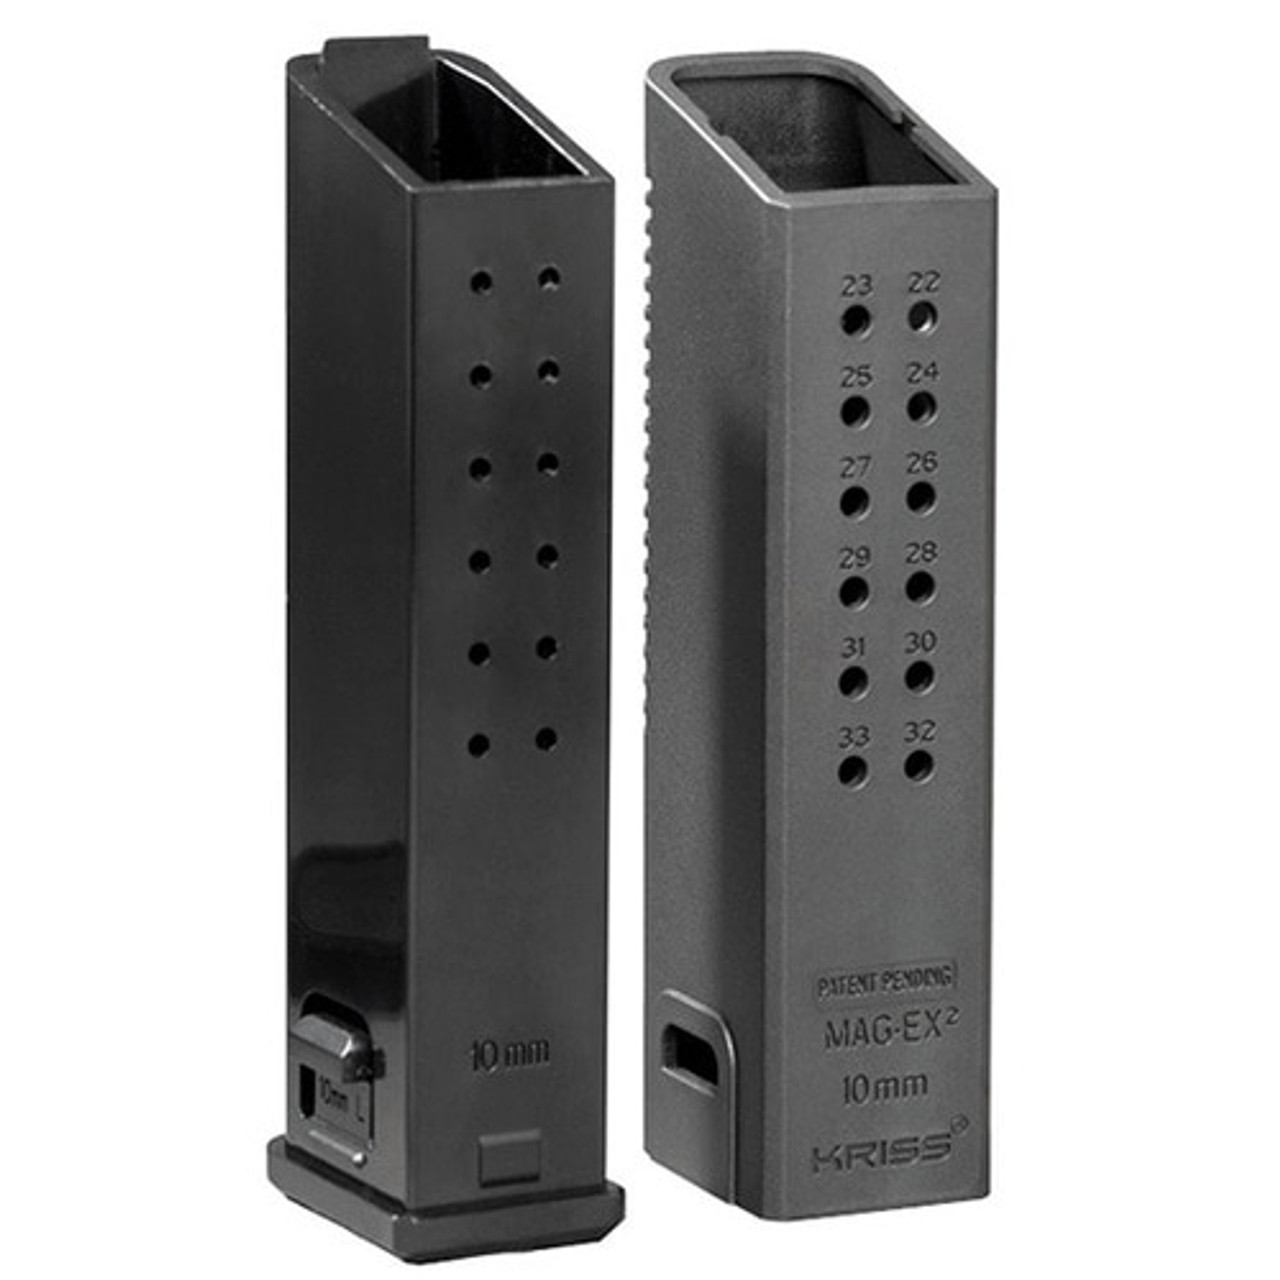 GLOCK OEM MAGAZINE SPEED LOADER for 45ACP 10mm FREE SHIPPING /& TRACKING #